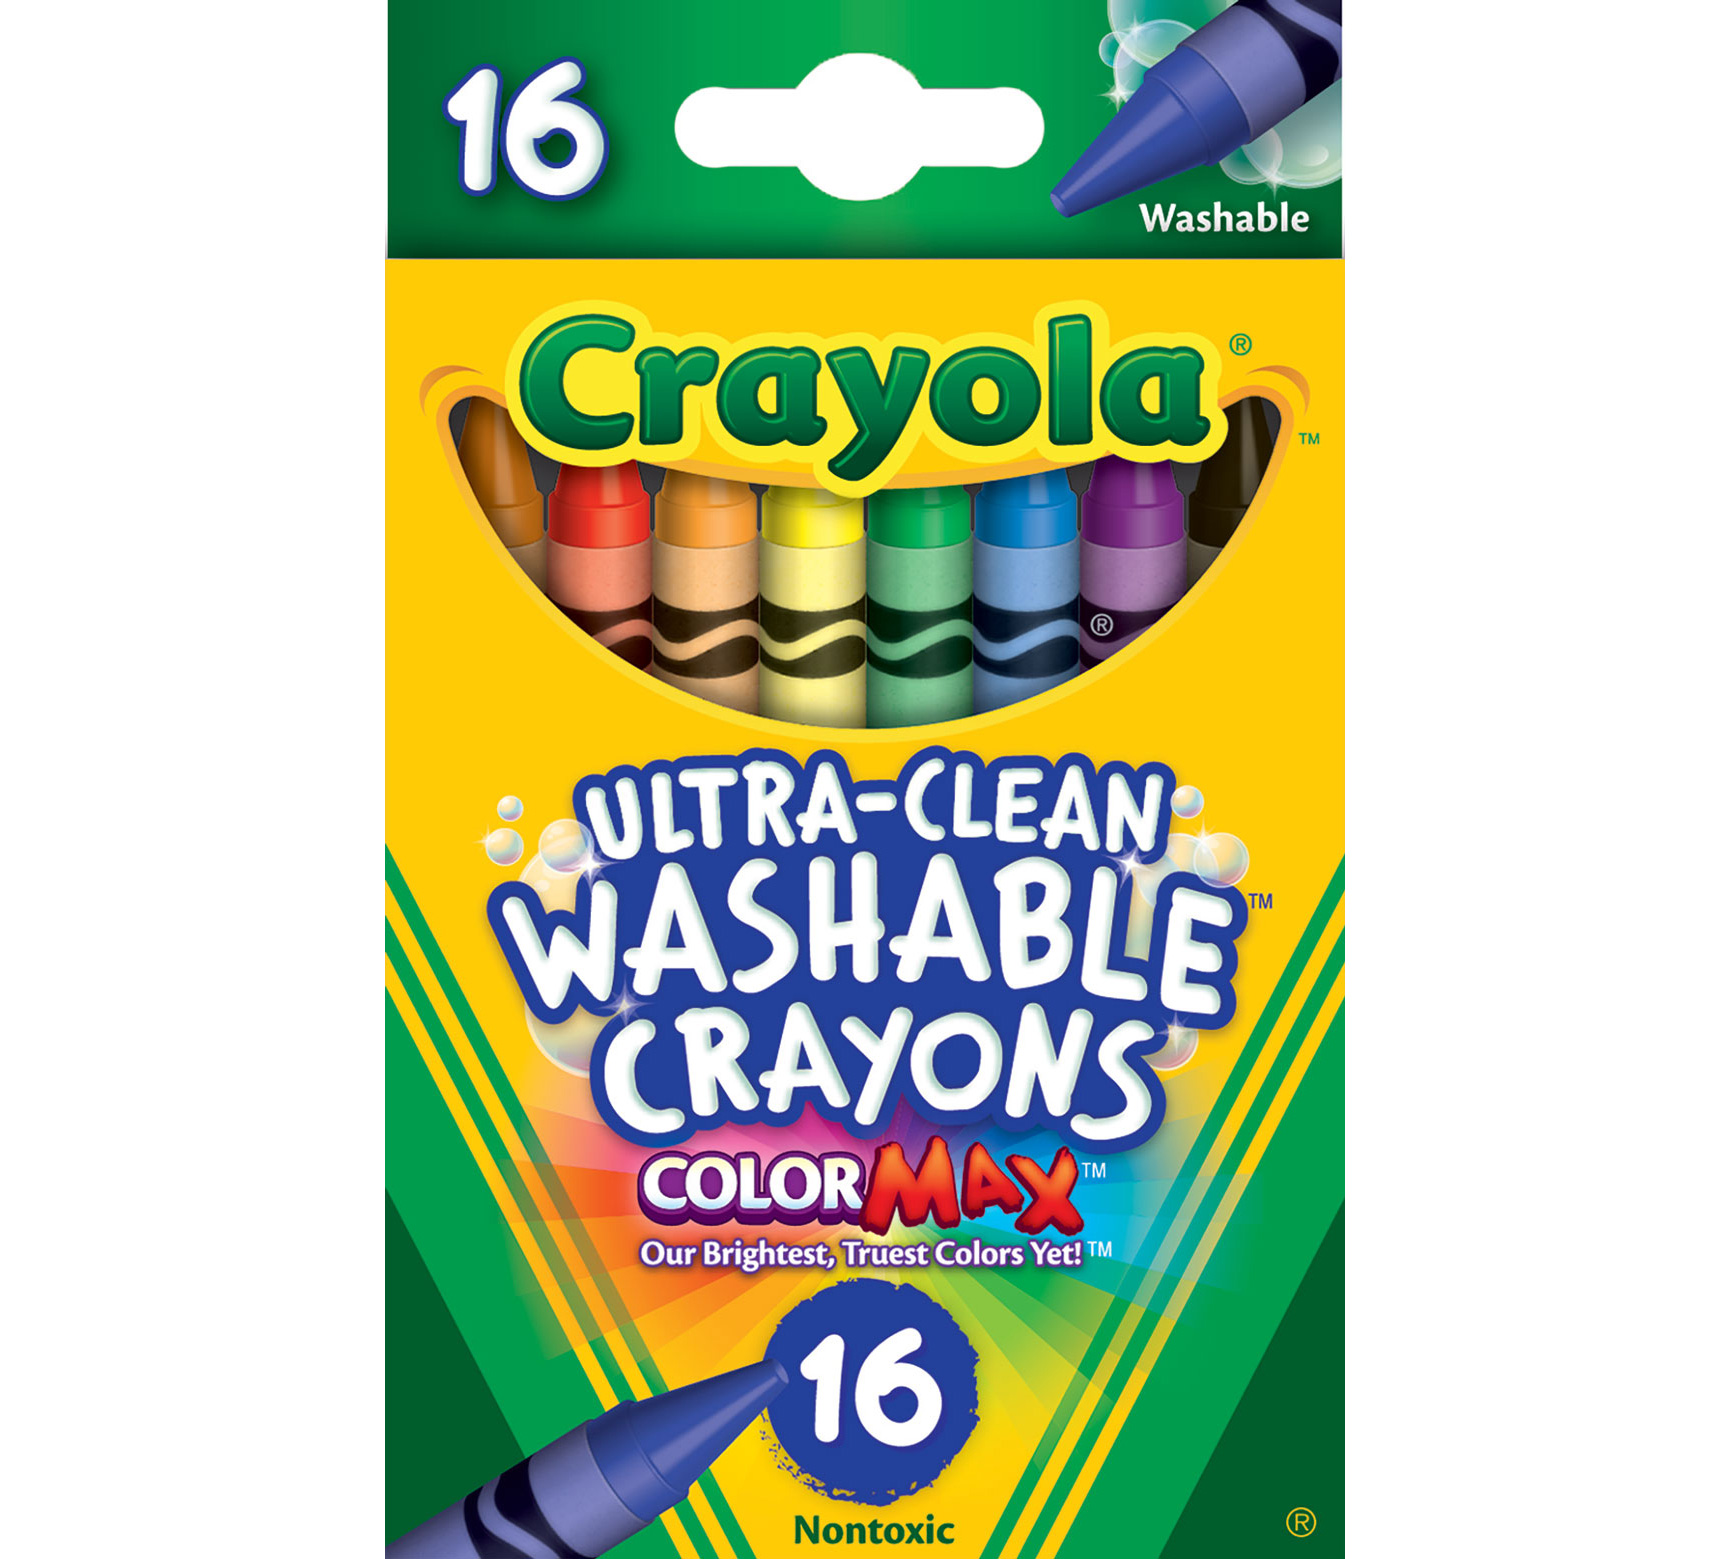 Ultra-Clean Washable Crayons 16 ct.